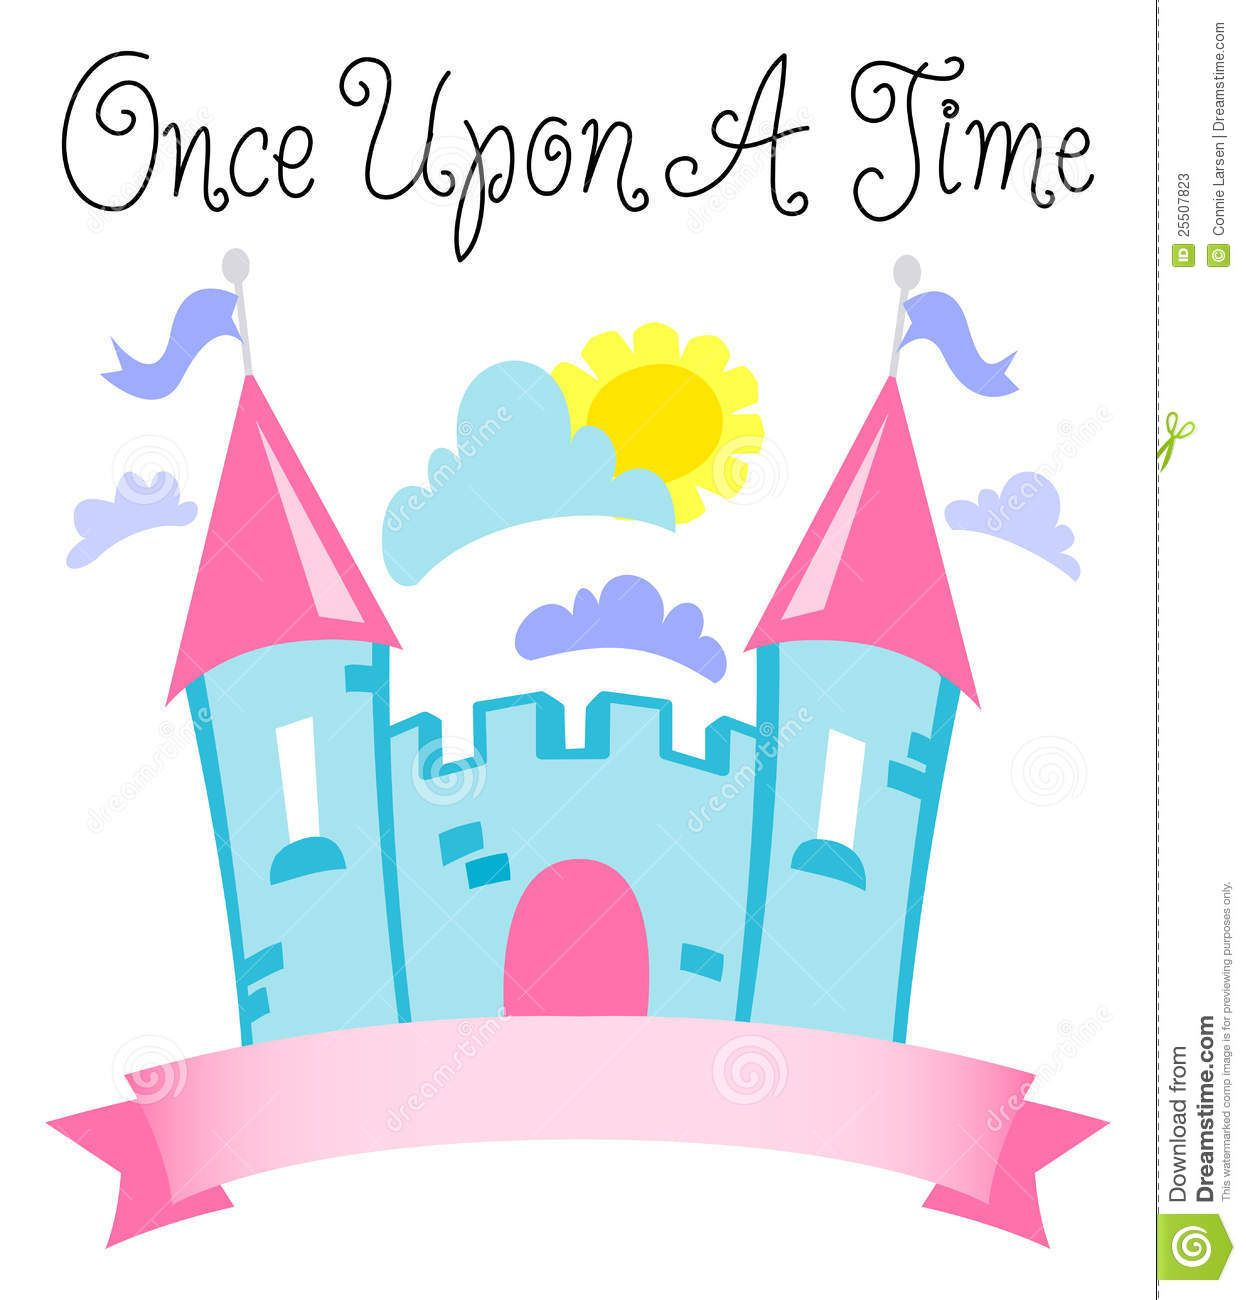 Use the form below to delete this Fairy Tale Clip Art ...